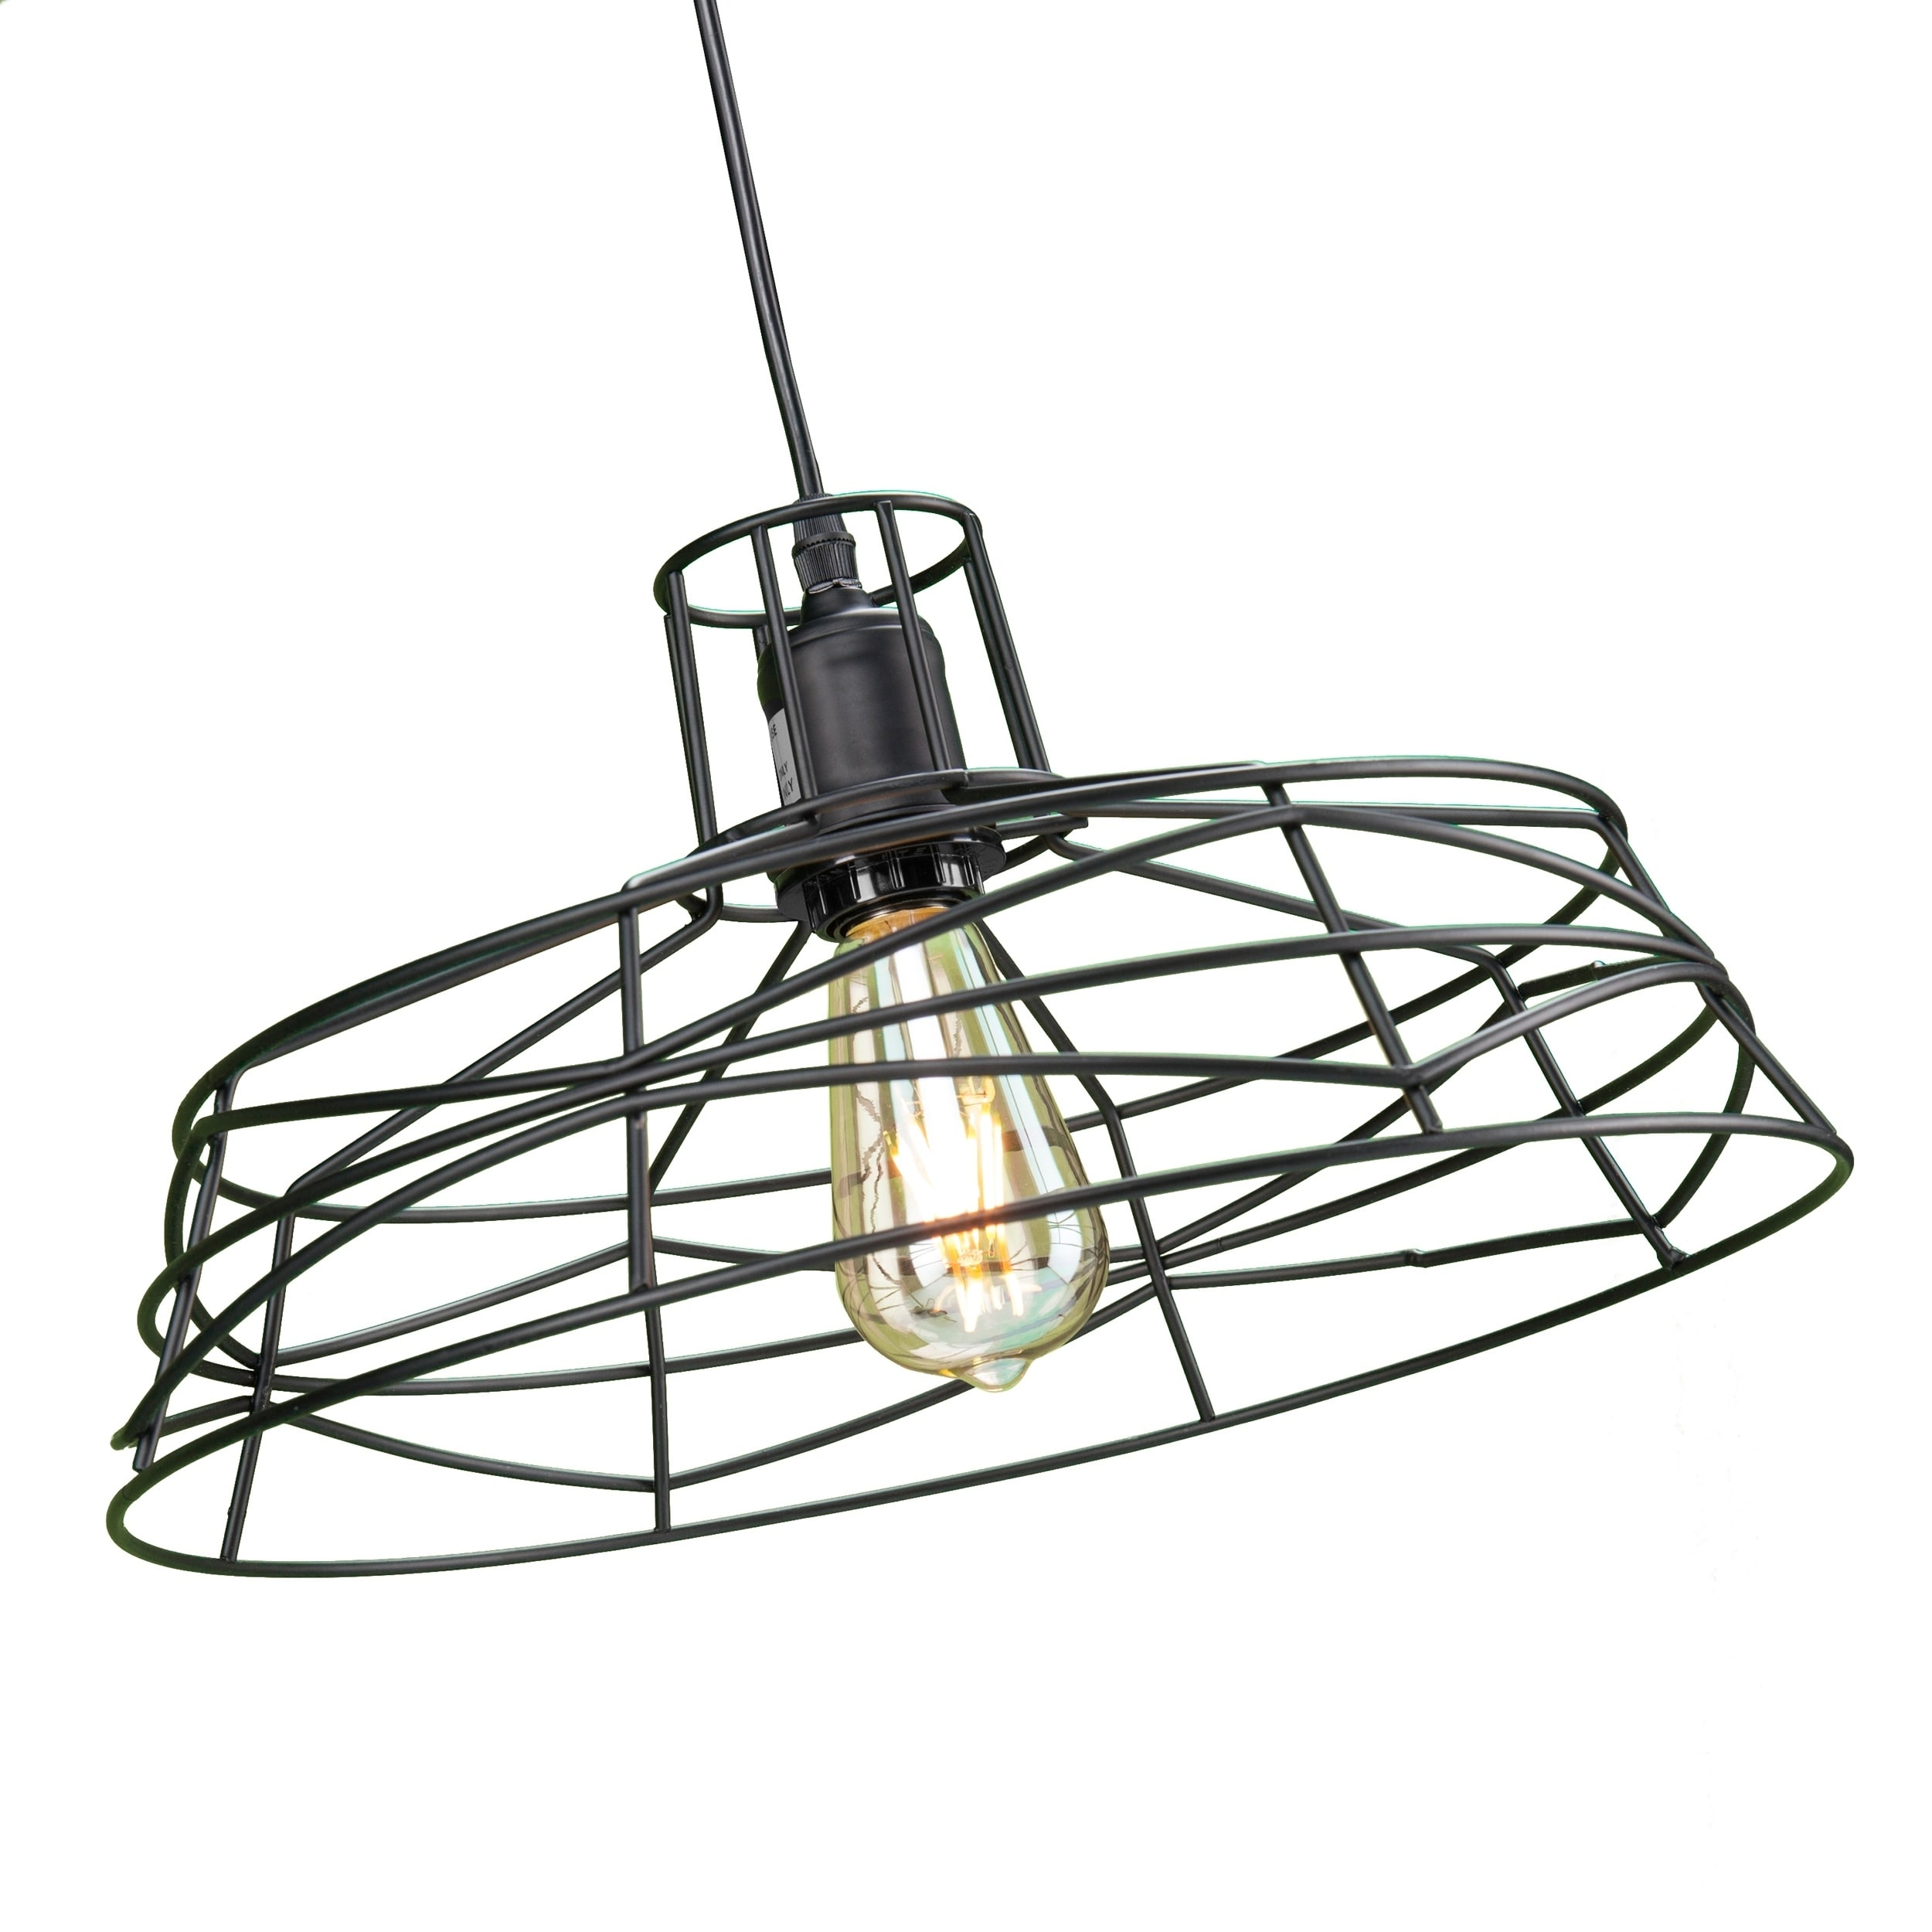 shop harper blvd valassina wire cage pendant l on sale free Fluorescent Light Wiring Connector shop harper blvd valassina wire cage pendant l on sale free shipping today overstock 13542312